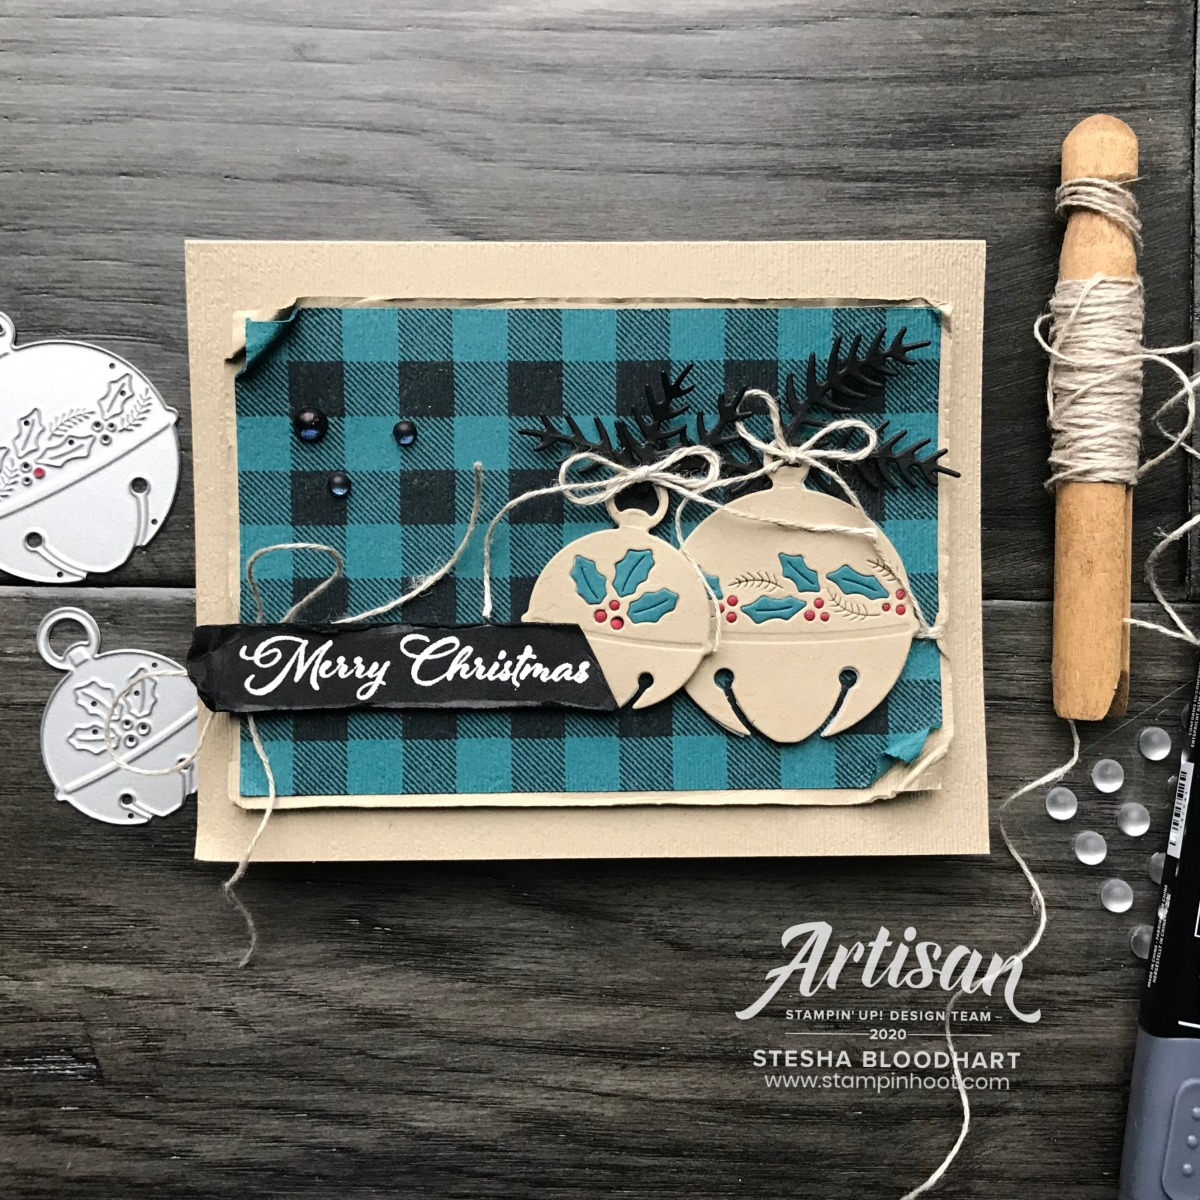 Cherish the Season Bundle from Stampin' Up! Merry Christmas Card by Stesha Bloodhart, Stampin' Hoot! Be Inspired Blog Hop Edited